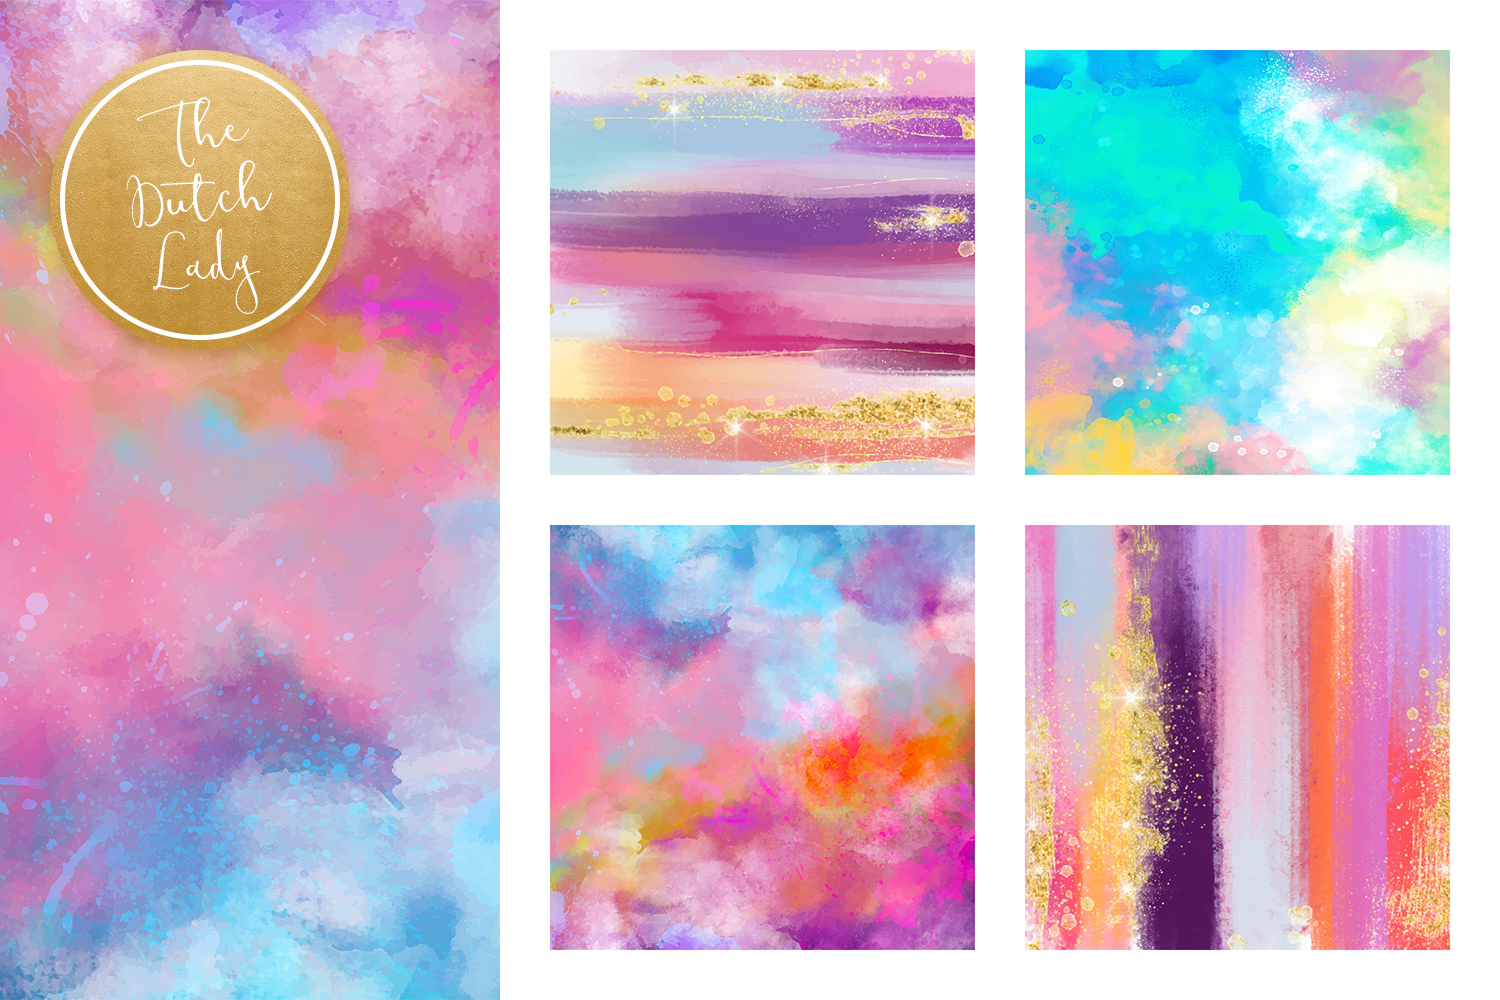 Colorful Brush Strokes & Stains Background Textures example image 2